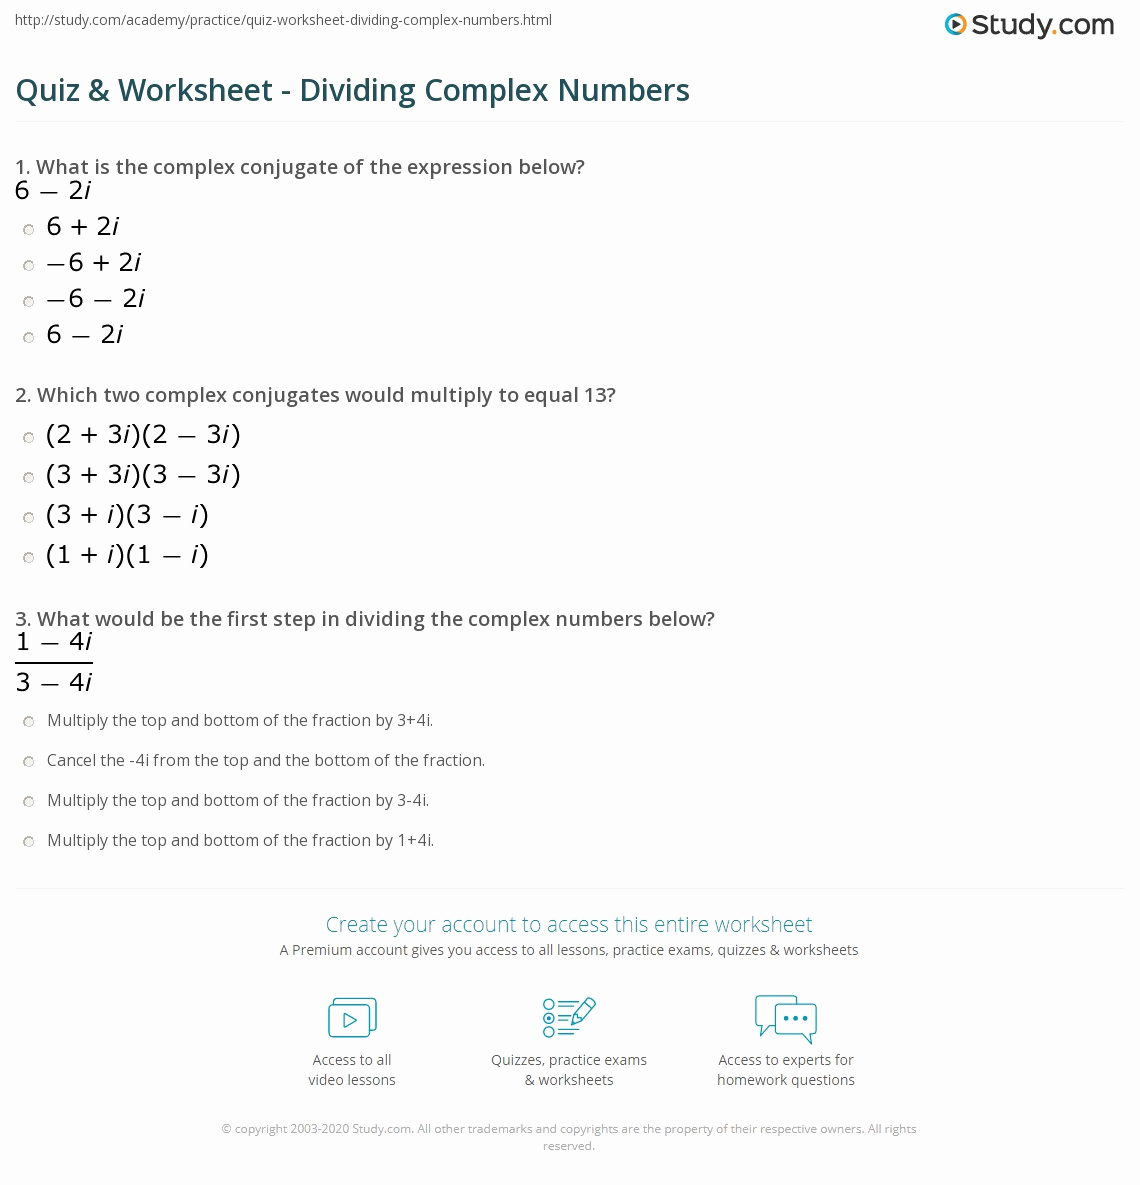 Multiplying Complex Numbers Worksheet or Quiz & Worksheet Dividing Plex Numbers